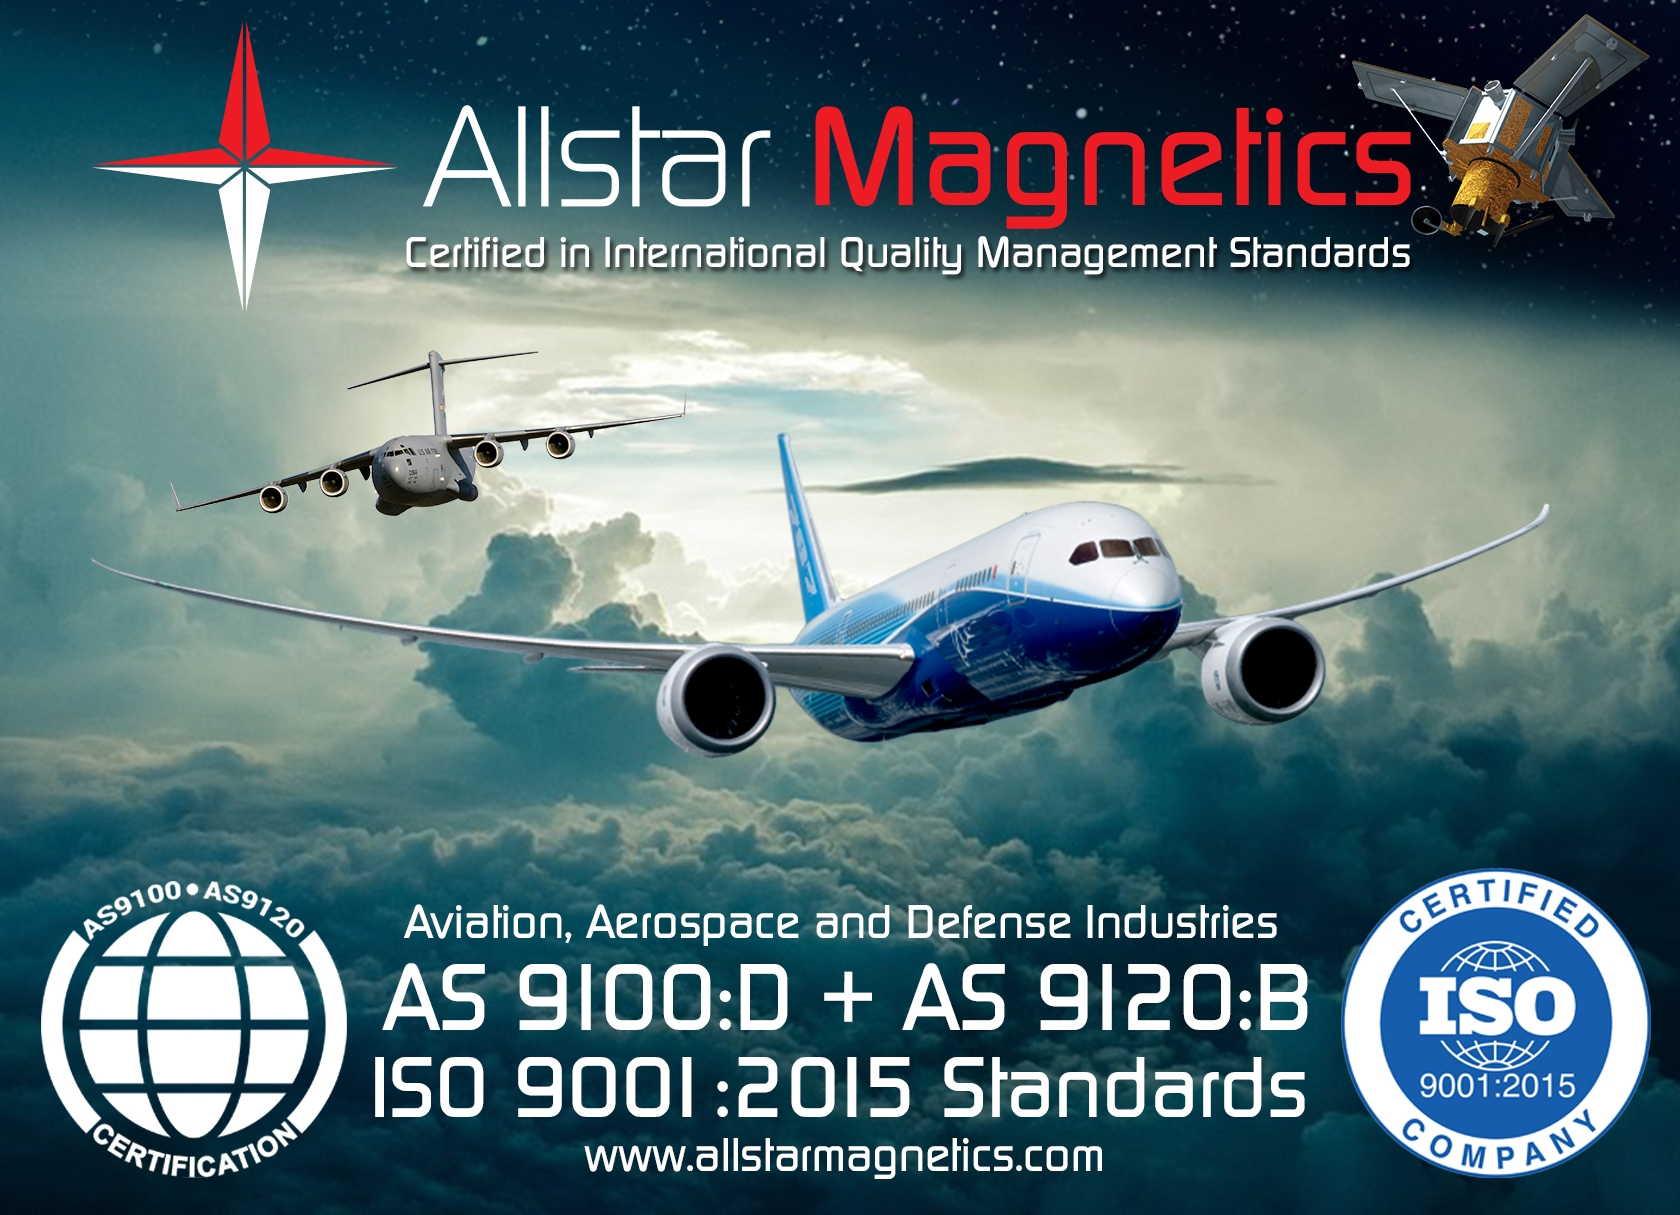 Allstar Magnetics is proud to announce that we are AS9100-D & AS9120-B certified